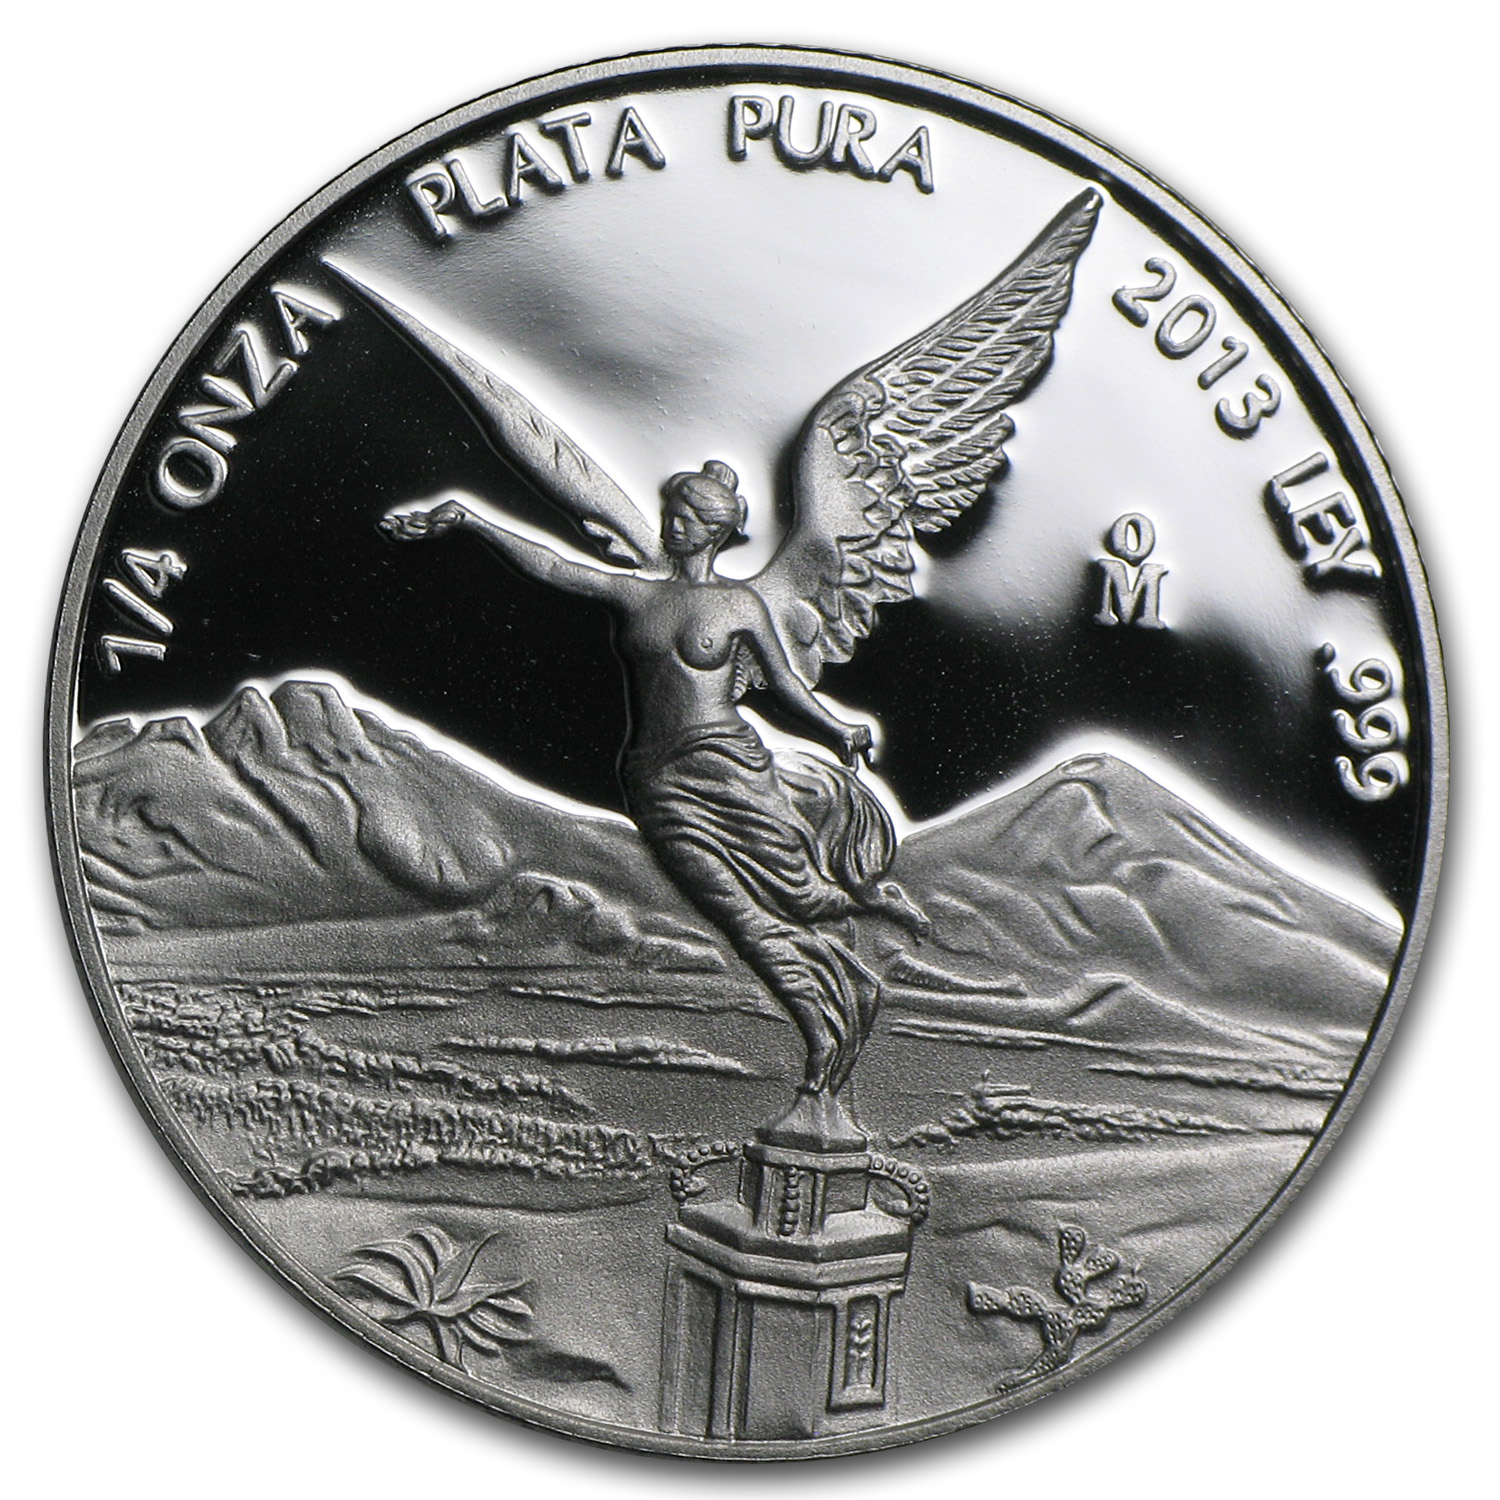 2013 Mexico 1/4 oz Silver Libertad Proof (In Capsule)